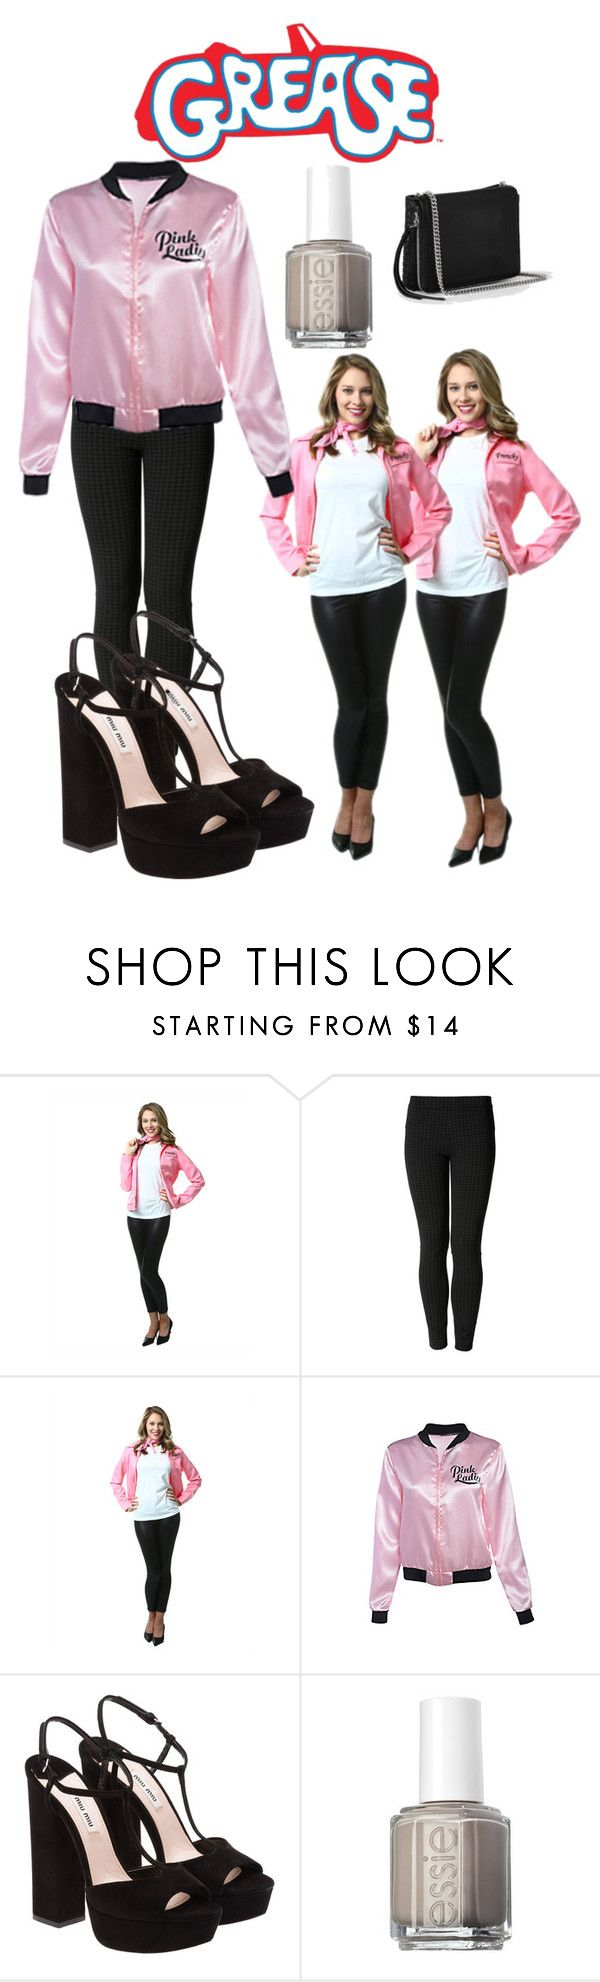 """""""Grease costume"""" by ariana-grandeofficial ❤ liked on Polyvore featuring Miu Miu, Essie and AllSaints"""